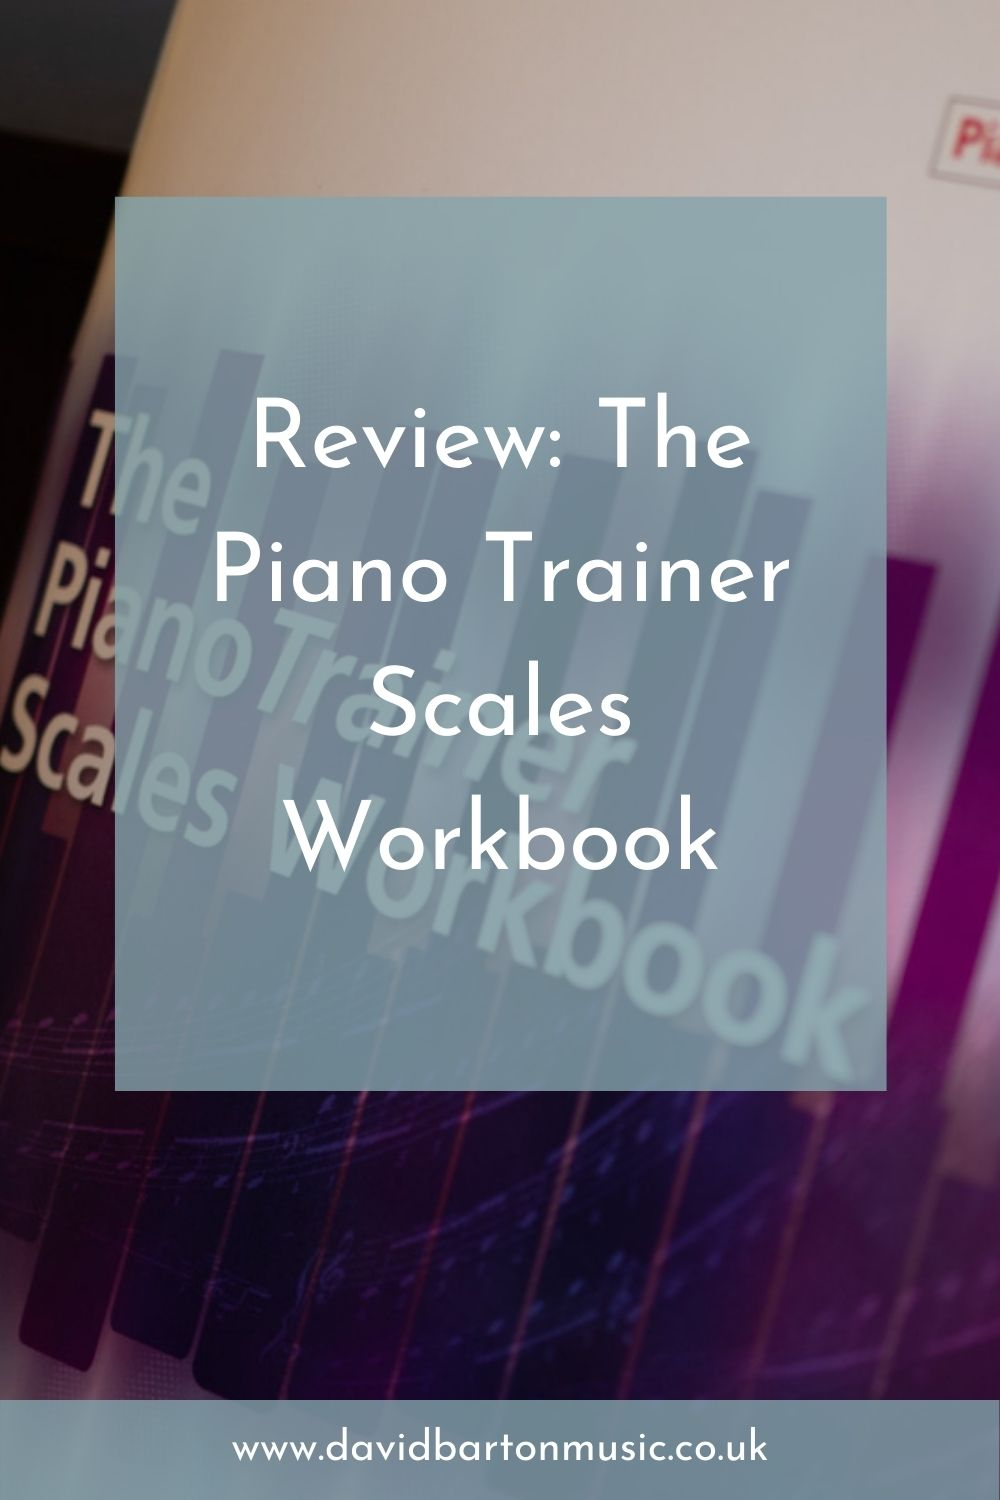 Review: The Piano Trainer Scales Workbook - Pinterest Graphic